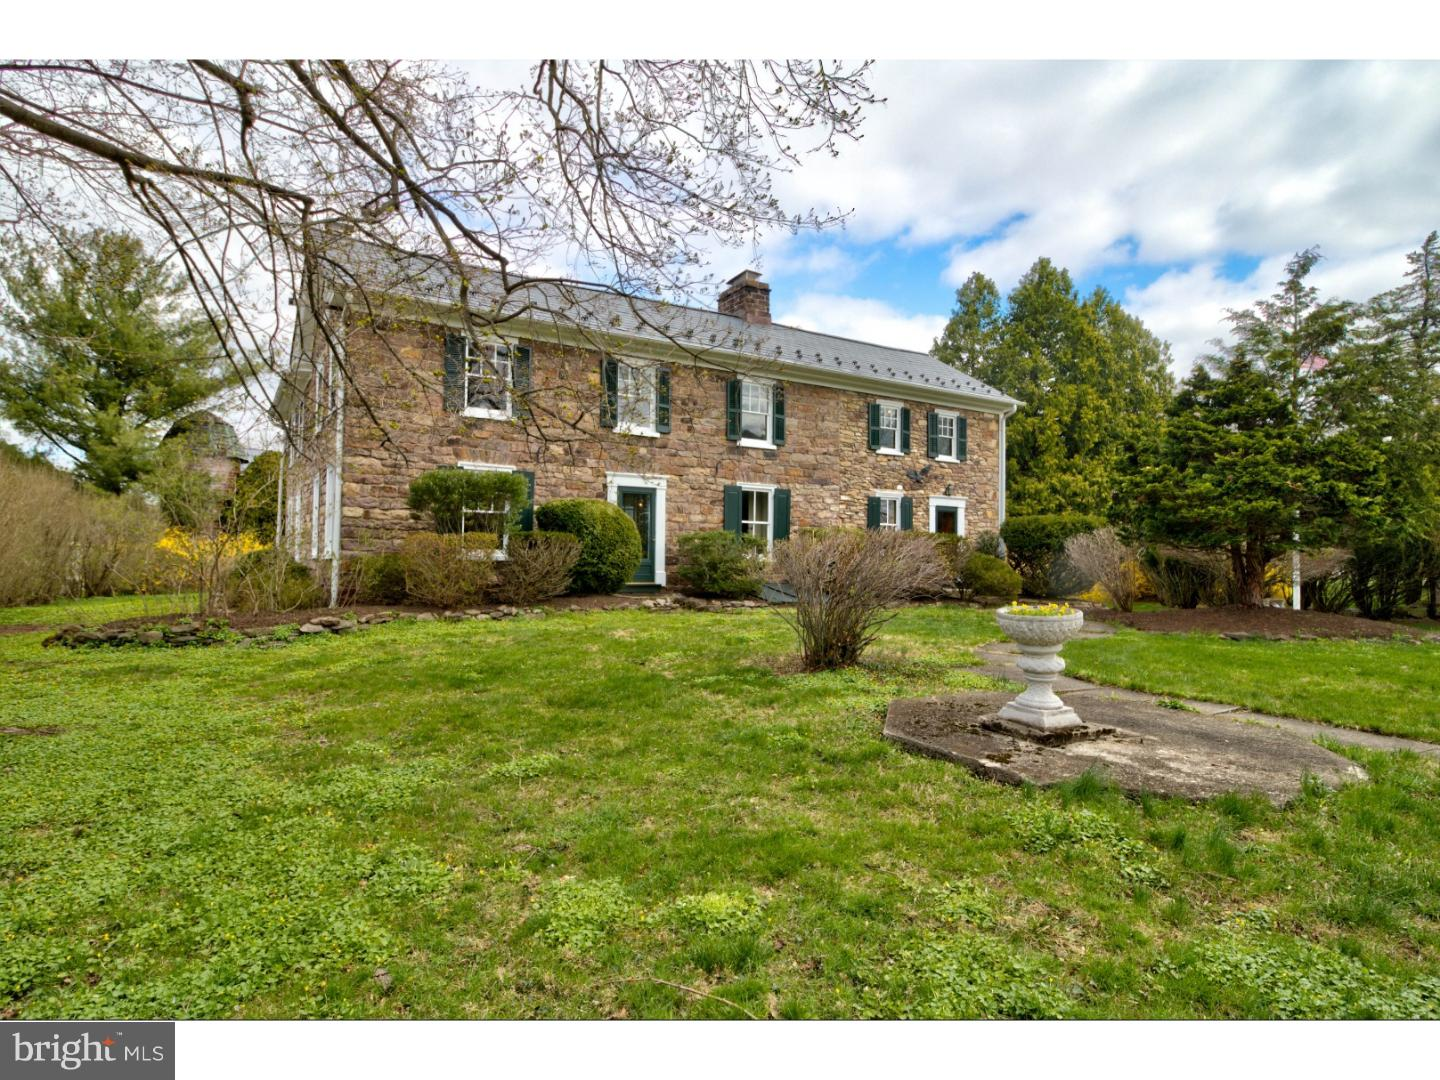 Property for Sale at 102 KINGWOOD STOCKTON Road Stockton, New Jersey 08559 United States